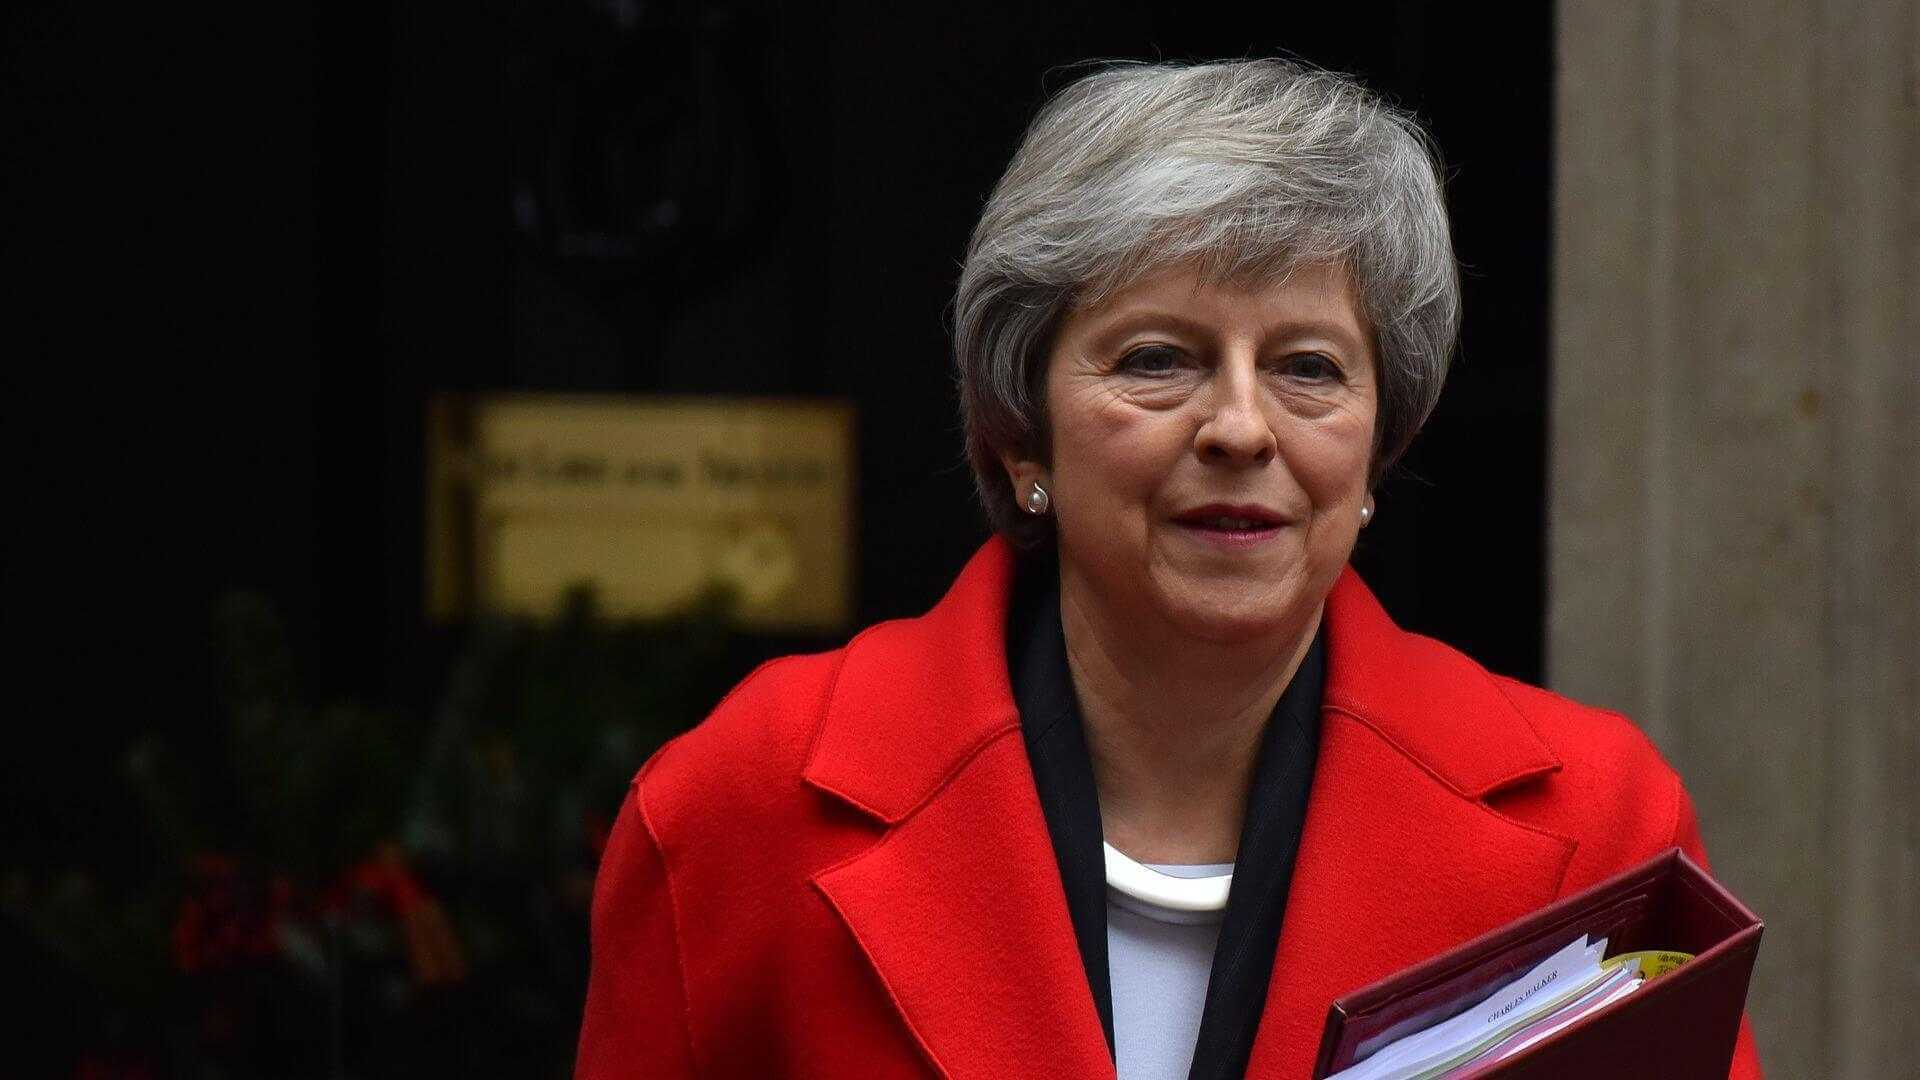 UK PM Warns Dire Consequences if Brexit Halts